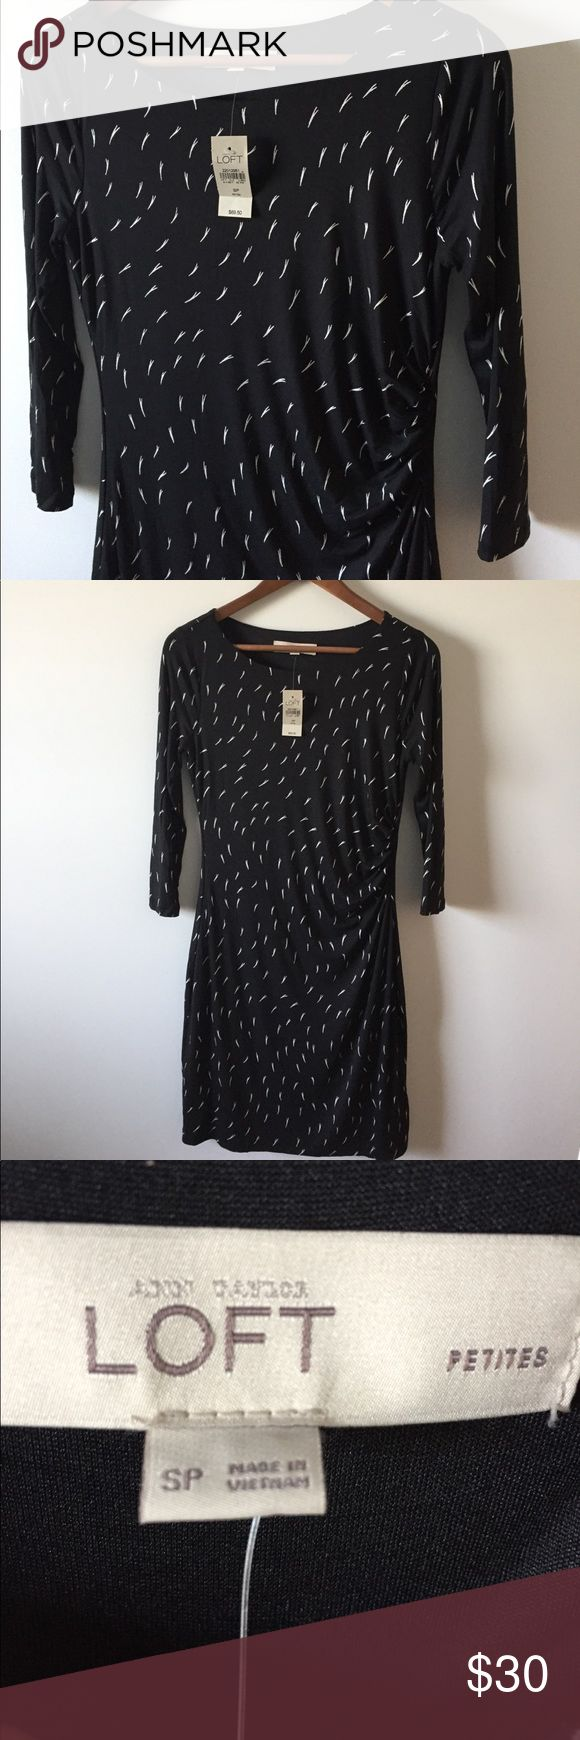 "NWT LOFT dress Size SP NWT LOFT dress. Black with subtle pattern - great for casual or office!  Pretty side ruching - so flattering! 16"" across bust, 35"" shoulder to hem. 3/4 sleeves. Slim fit. Has been sitting in my closet - never worn. Size small petite. LOFT Dresses"